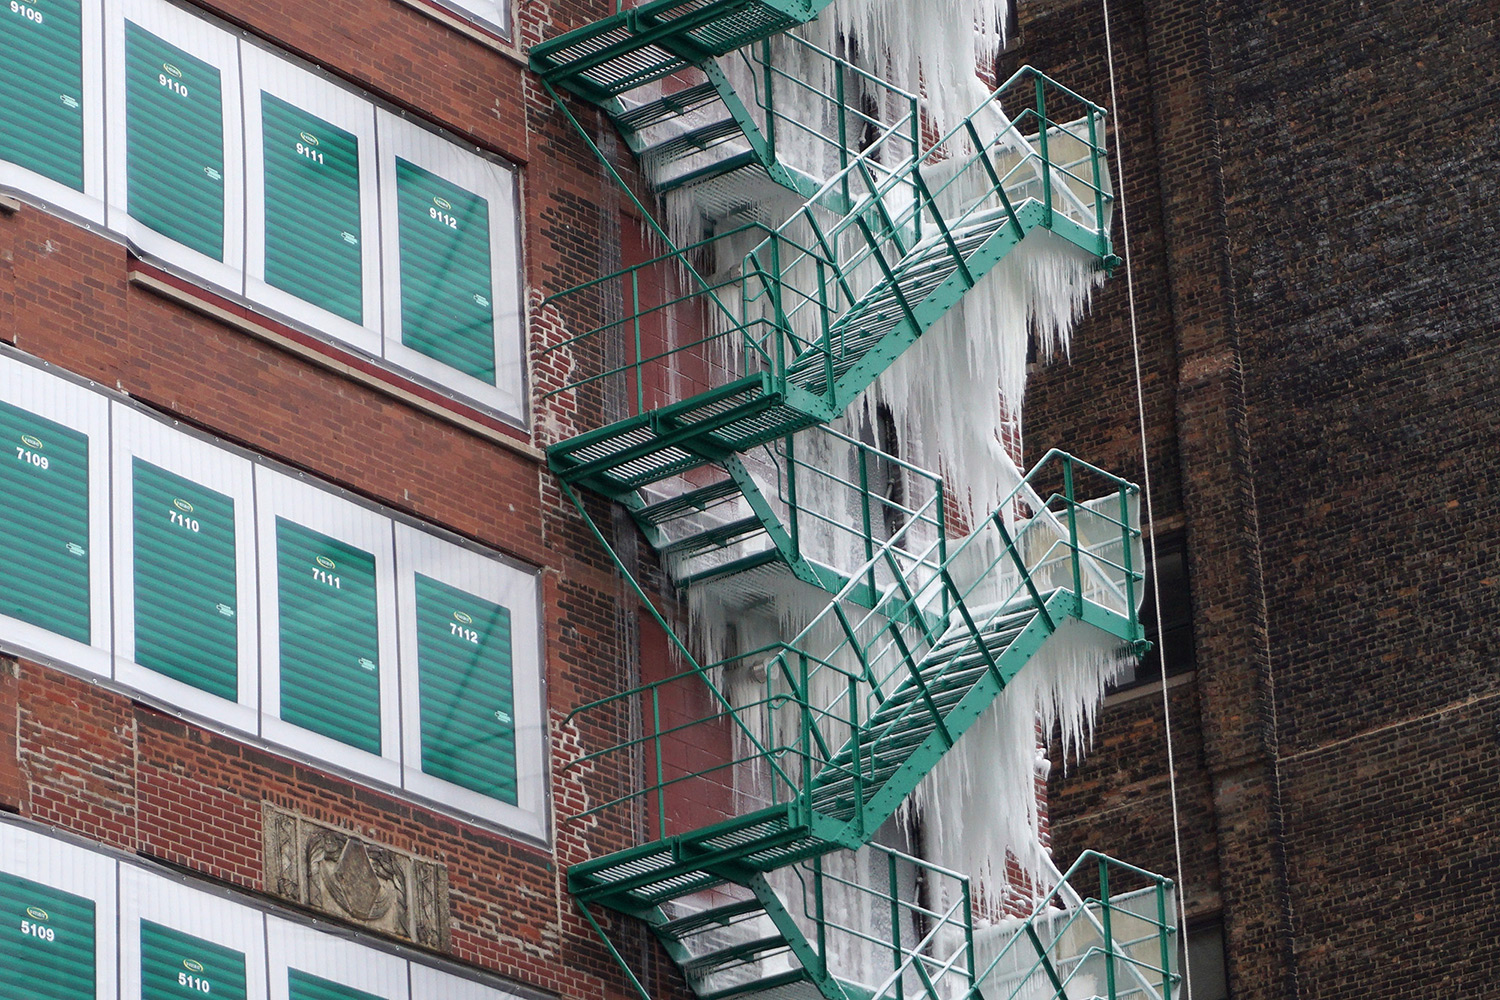 A Top Floor Sprinkler Leak Creates a 21-Story Tower of Icicles on a Chicago Fire Escape